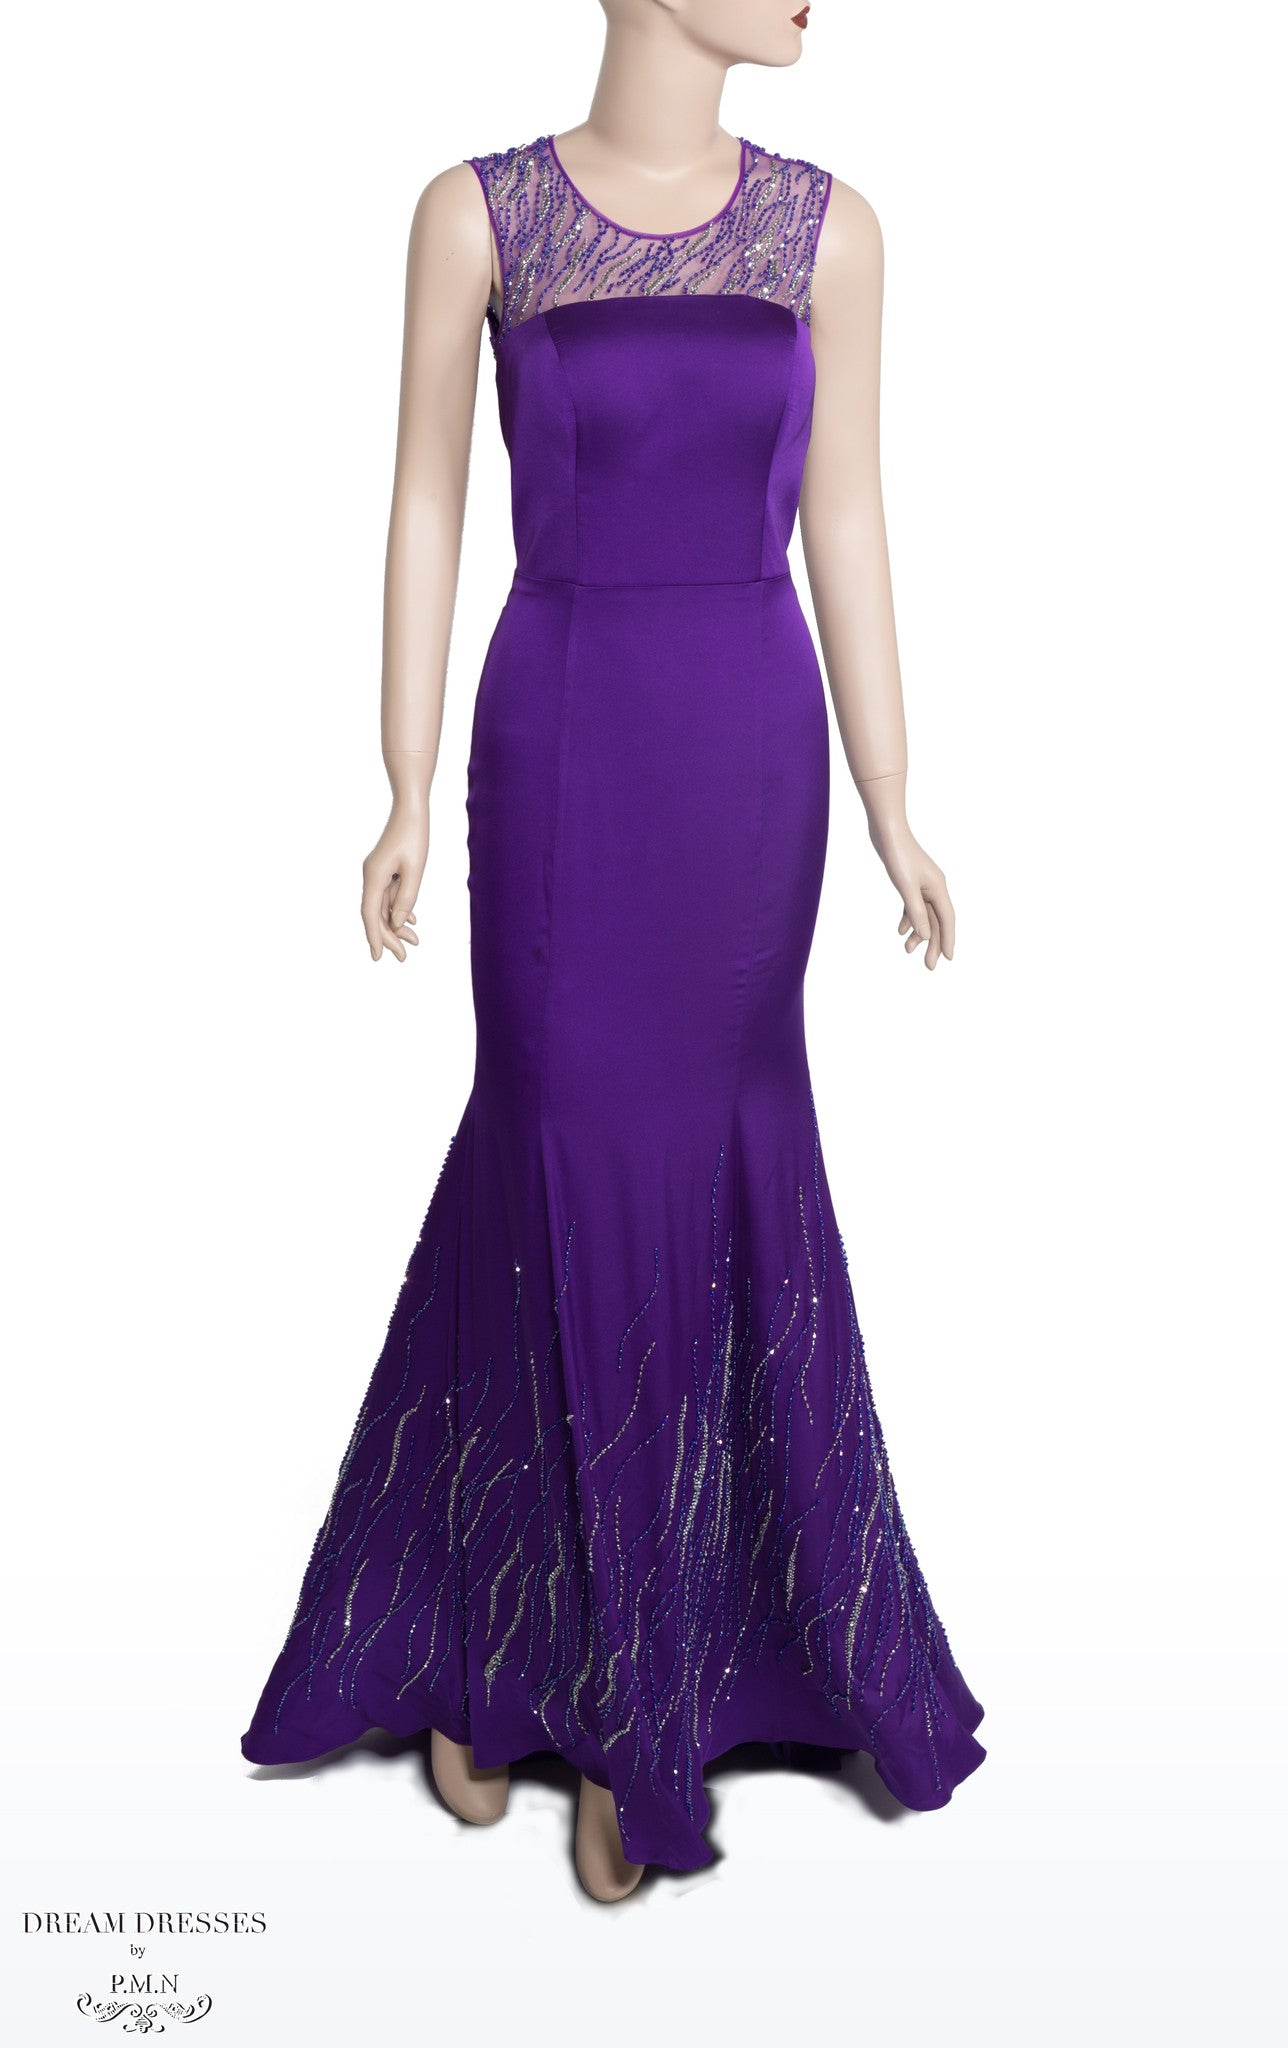 Purple Bead-embellished Dress (#Nicolle) - Dream Dresses by P.M.N  - 1